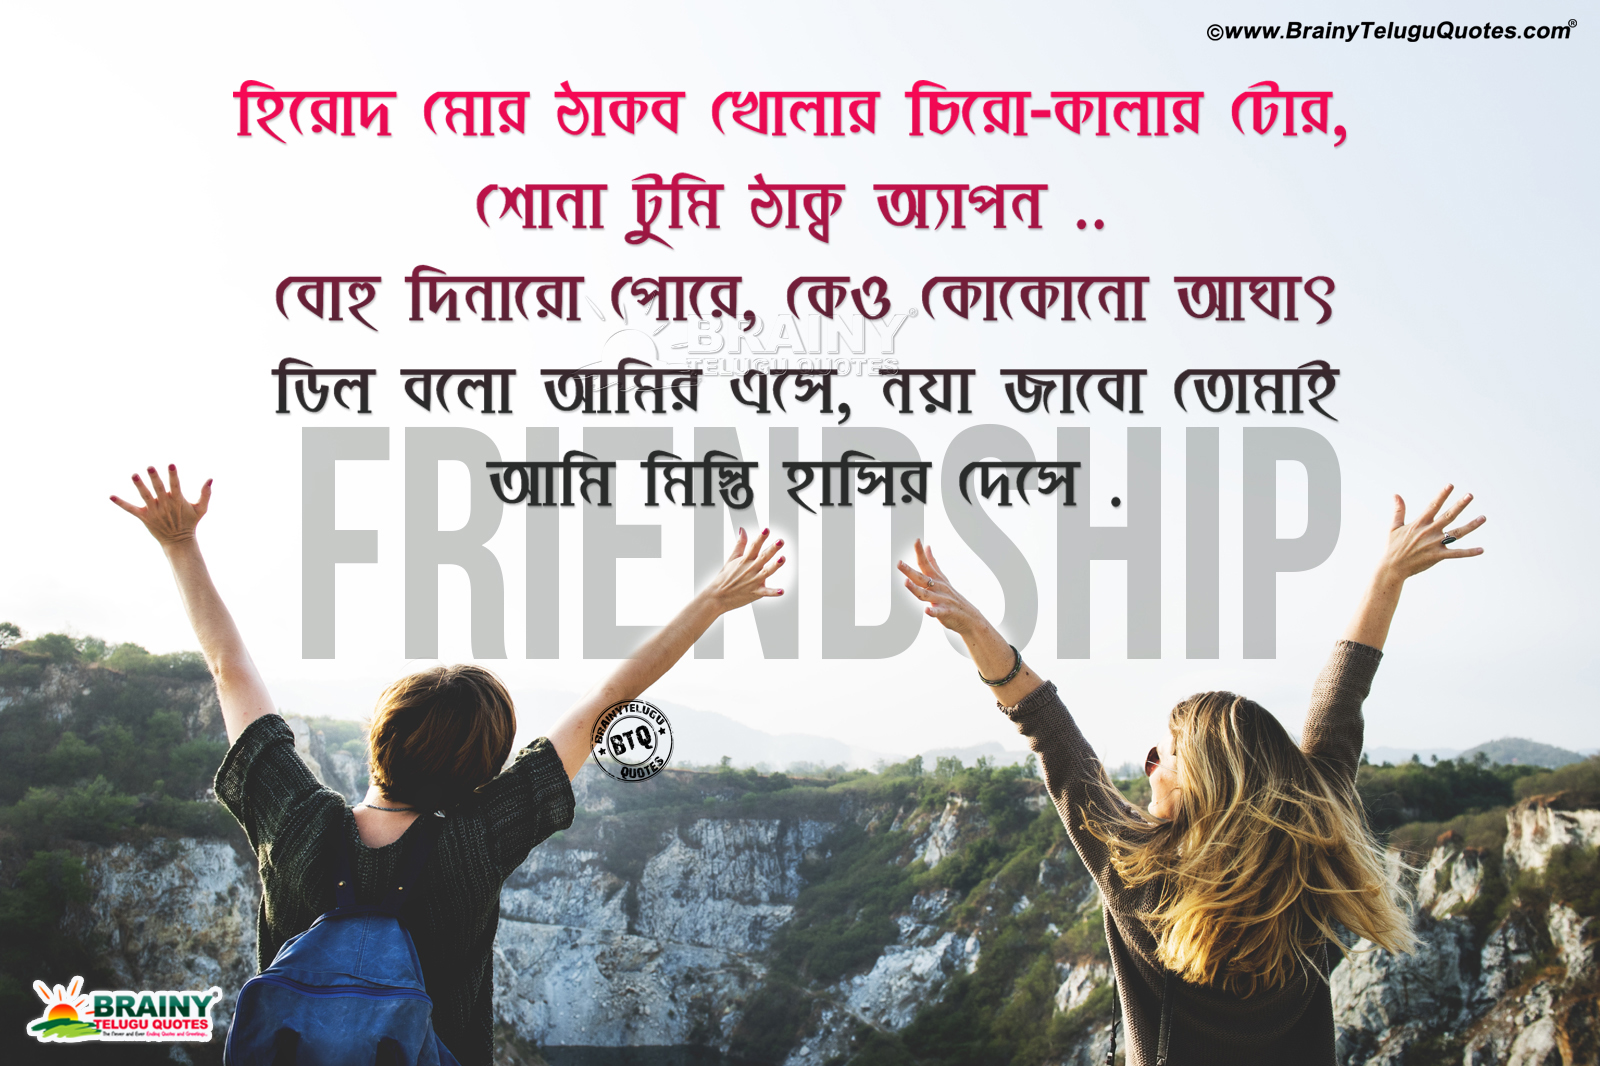 Bengali Heart Touching Quotes: Best Bengali Friendship Quotes Sms Messages Whatsapp